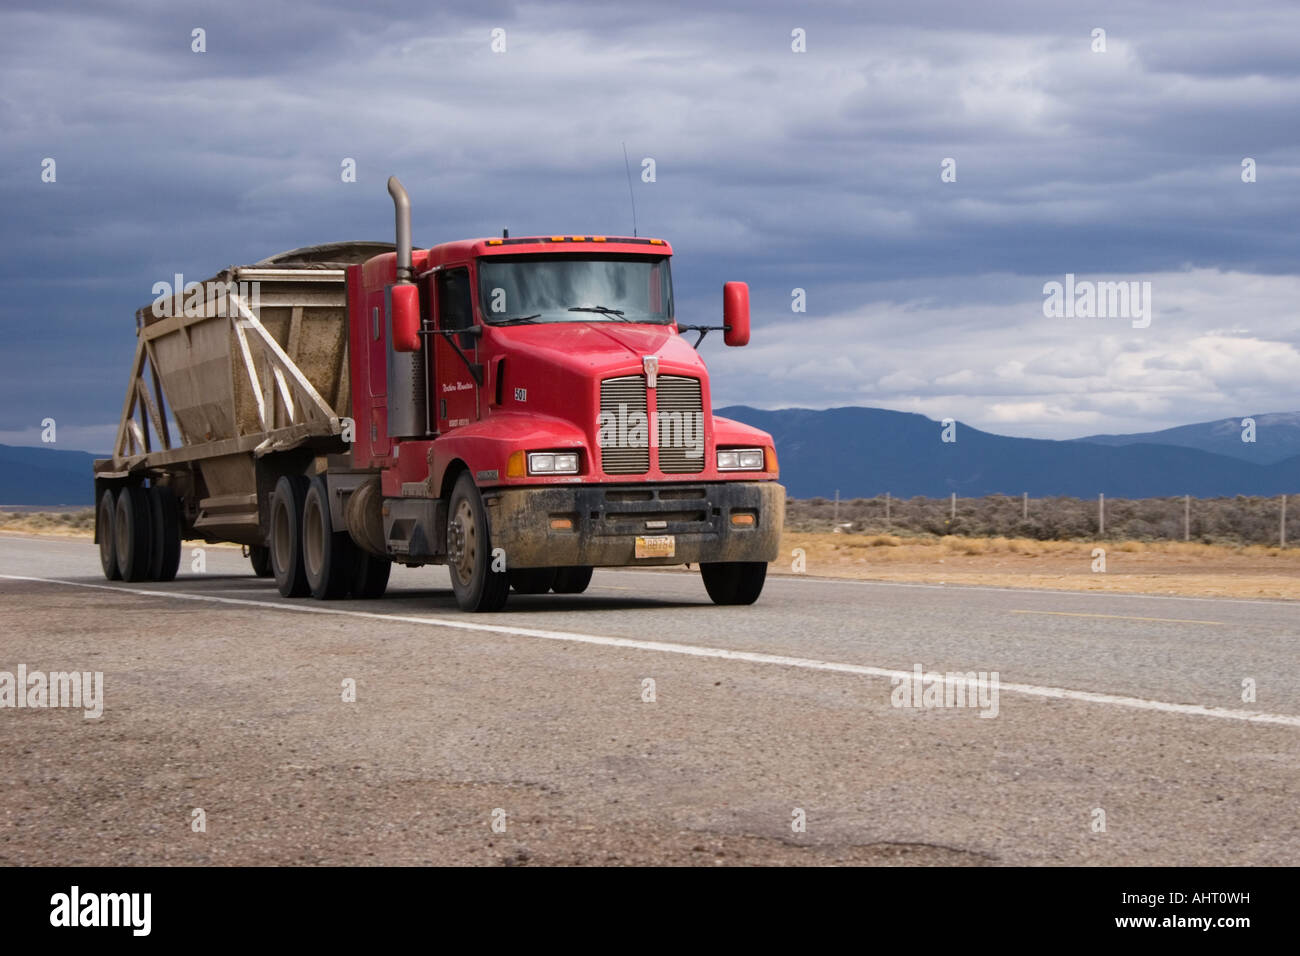 Cargo truck travelling along the highway under a cloudy sky. Stock Photo